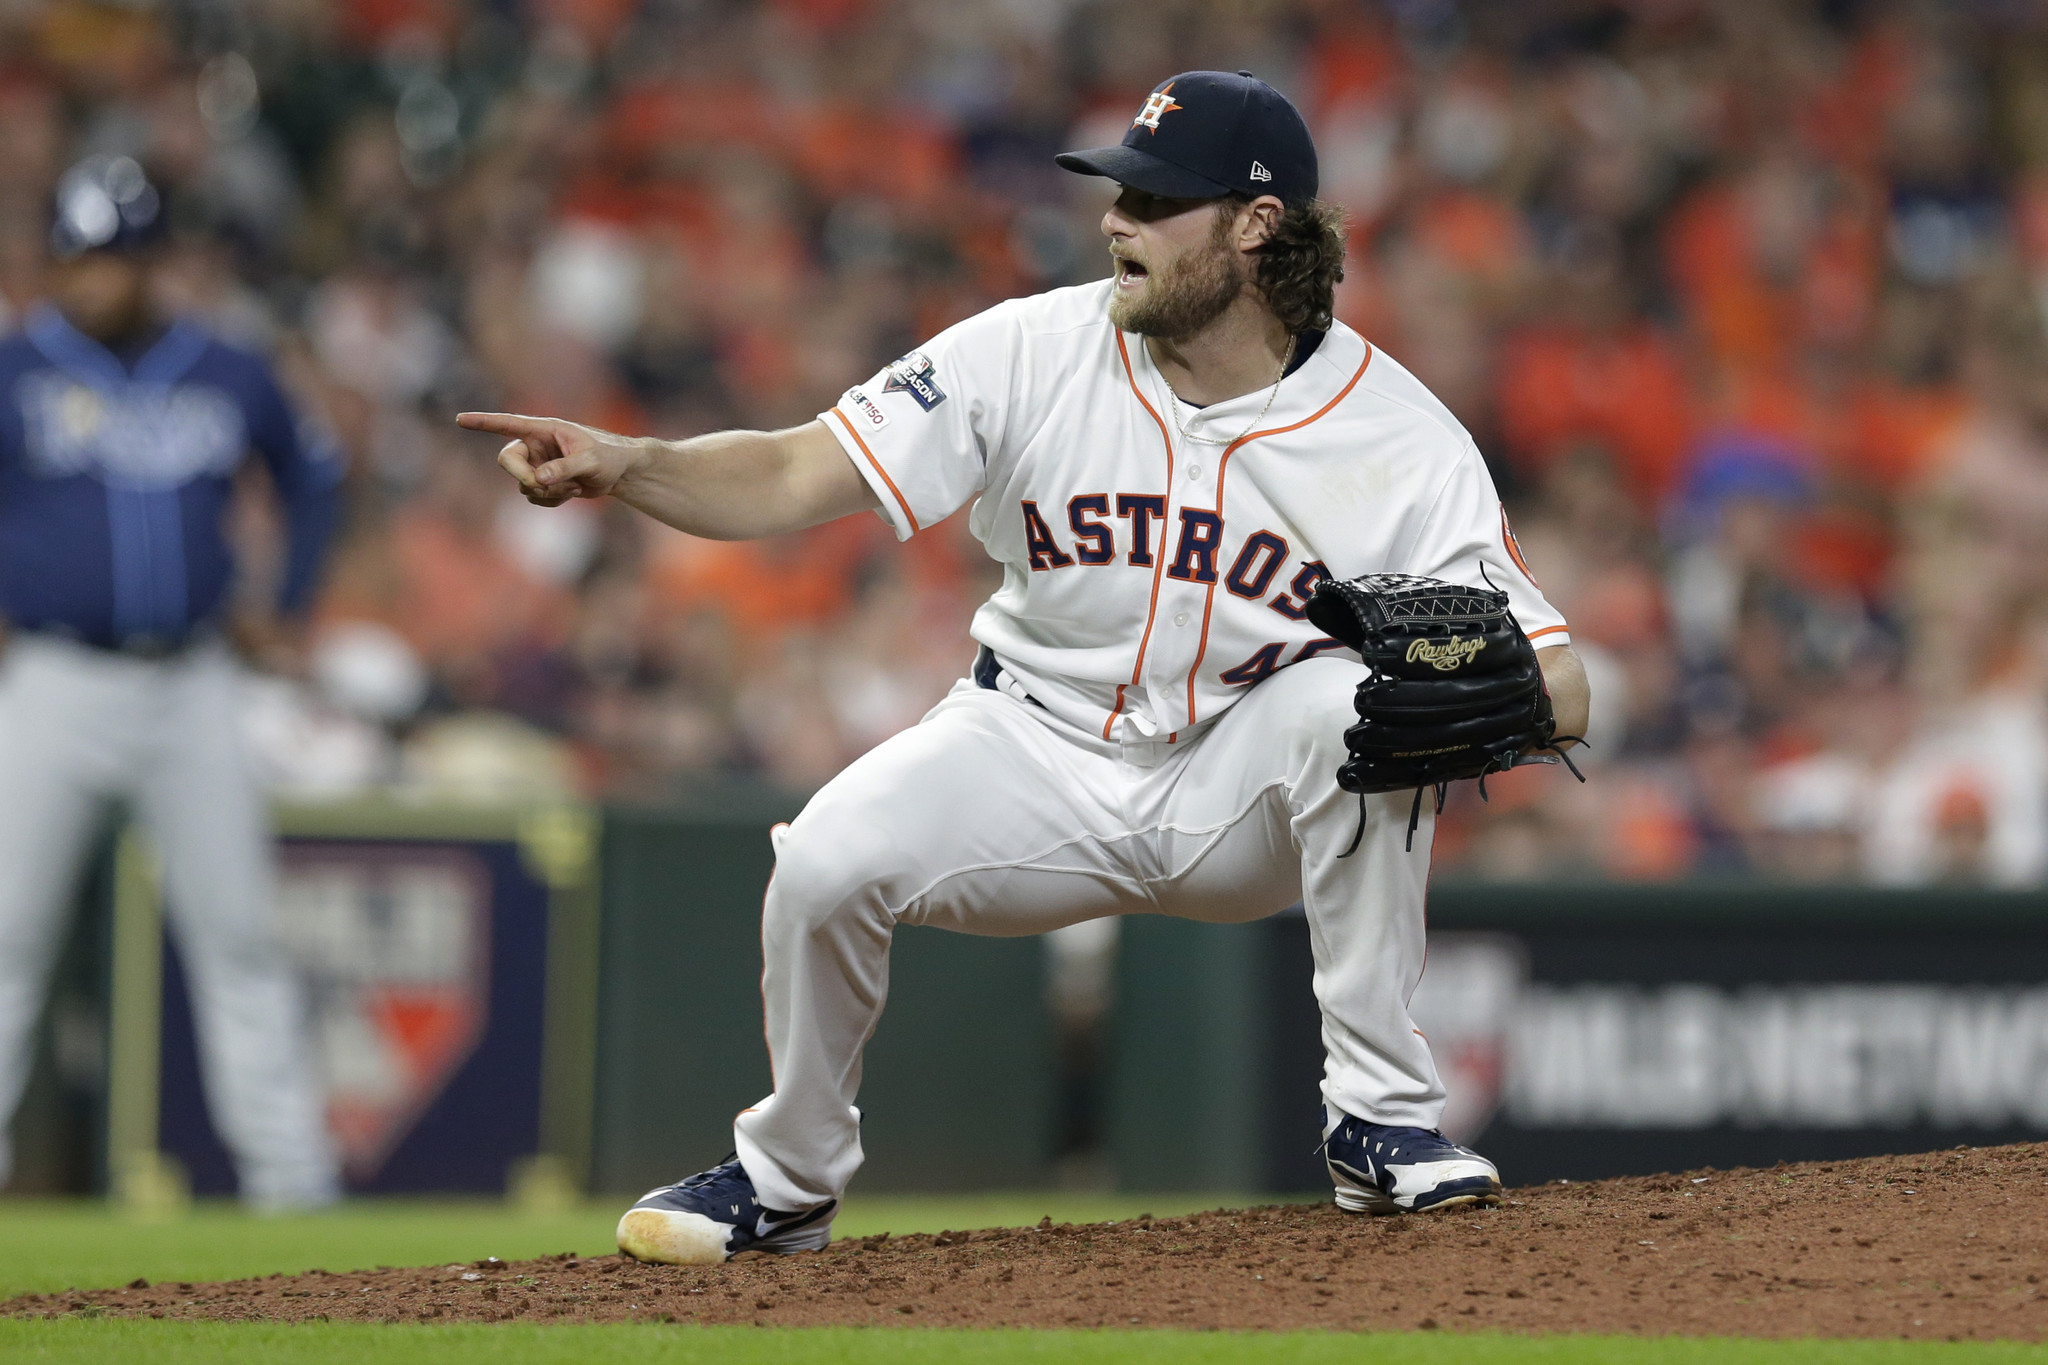 The Yankees will have to rethink their offer to Gerrit Cole after Stephen Strasburg's record-breaking deal